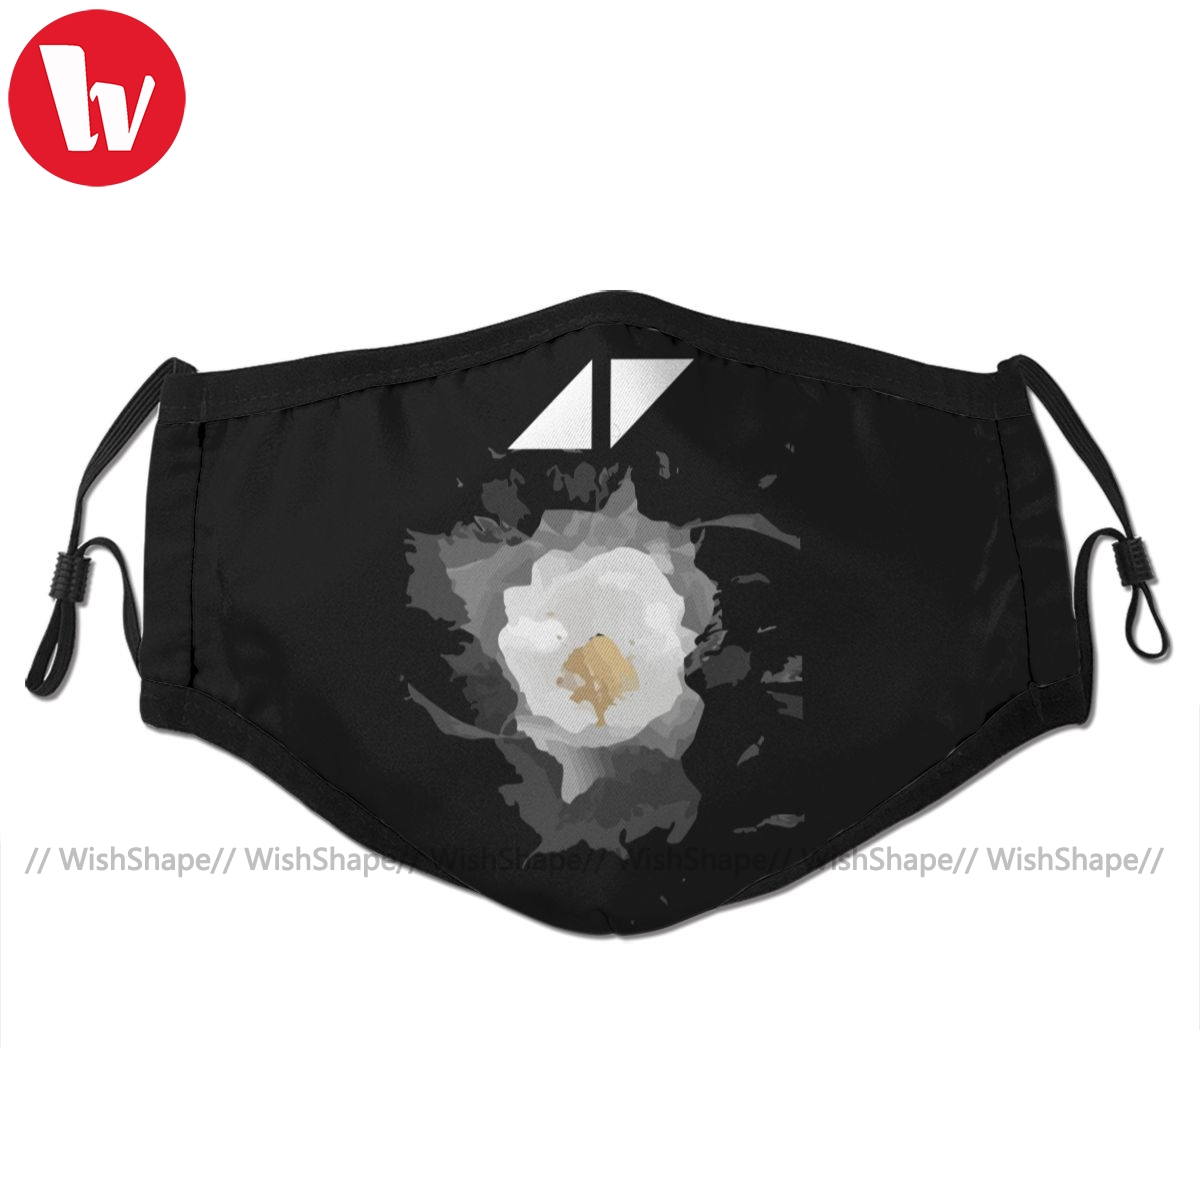 Avicii Mouth Face Mask Avicii Music The Flower Facial Mask Fashion Cool With 2 Filters For Adult